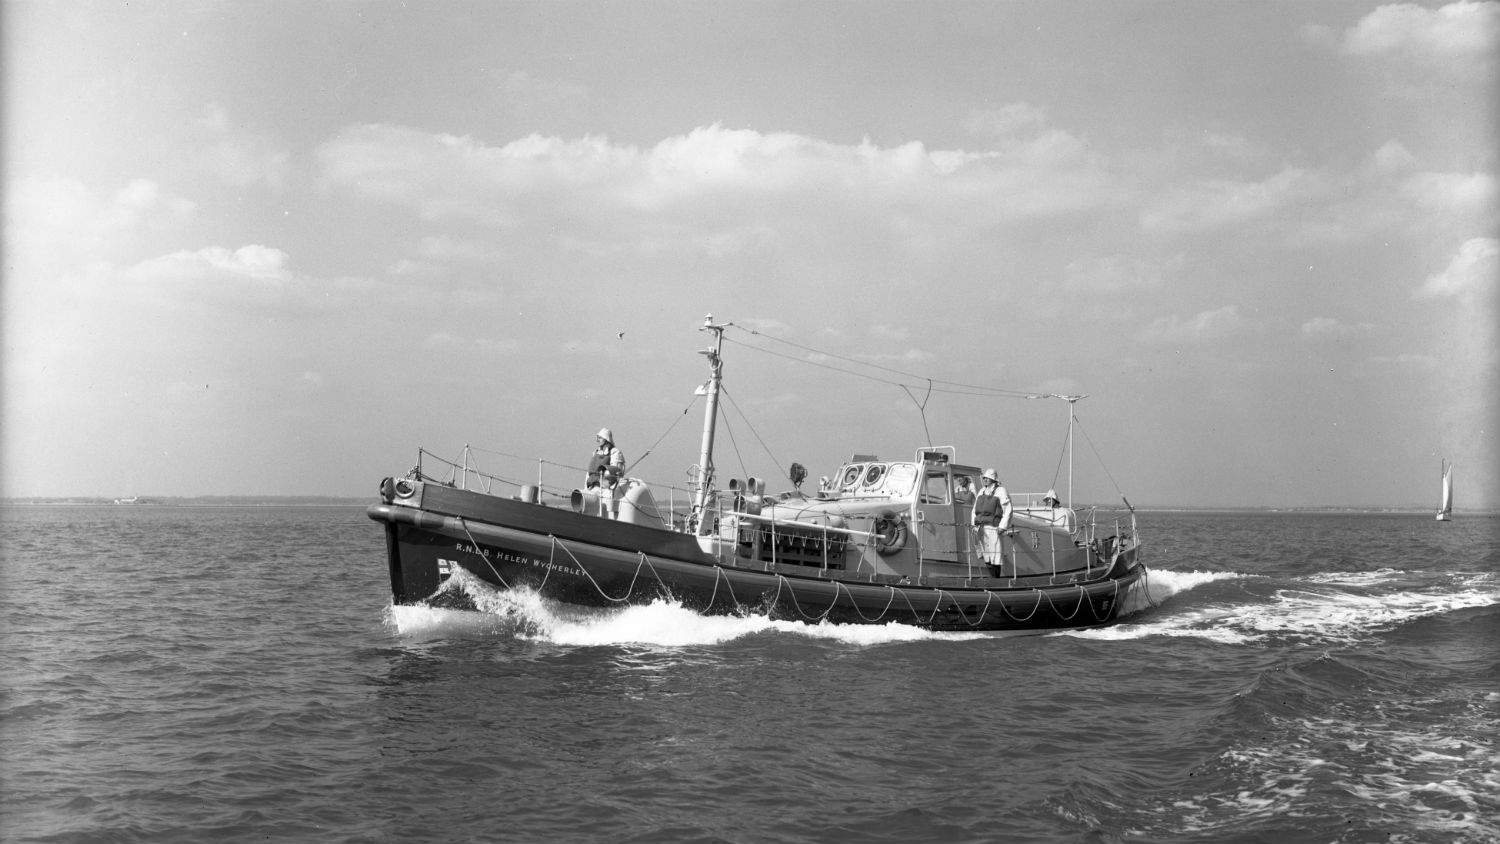 Black and white image of Whitehills lifeboat, Helen Wycherley, while on trials